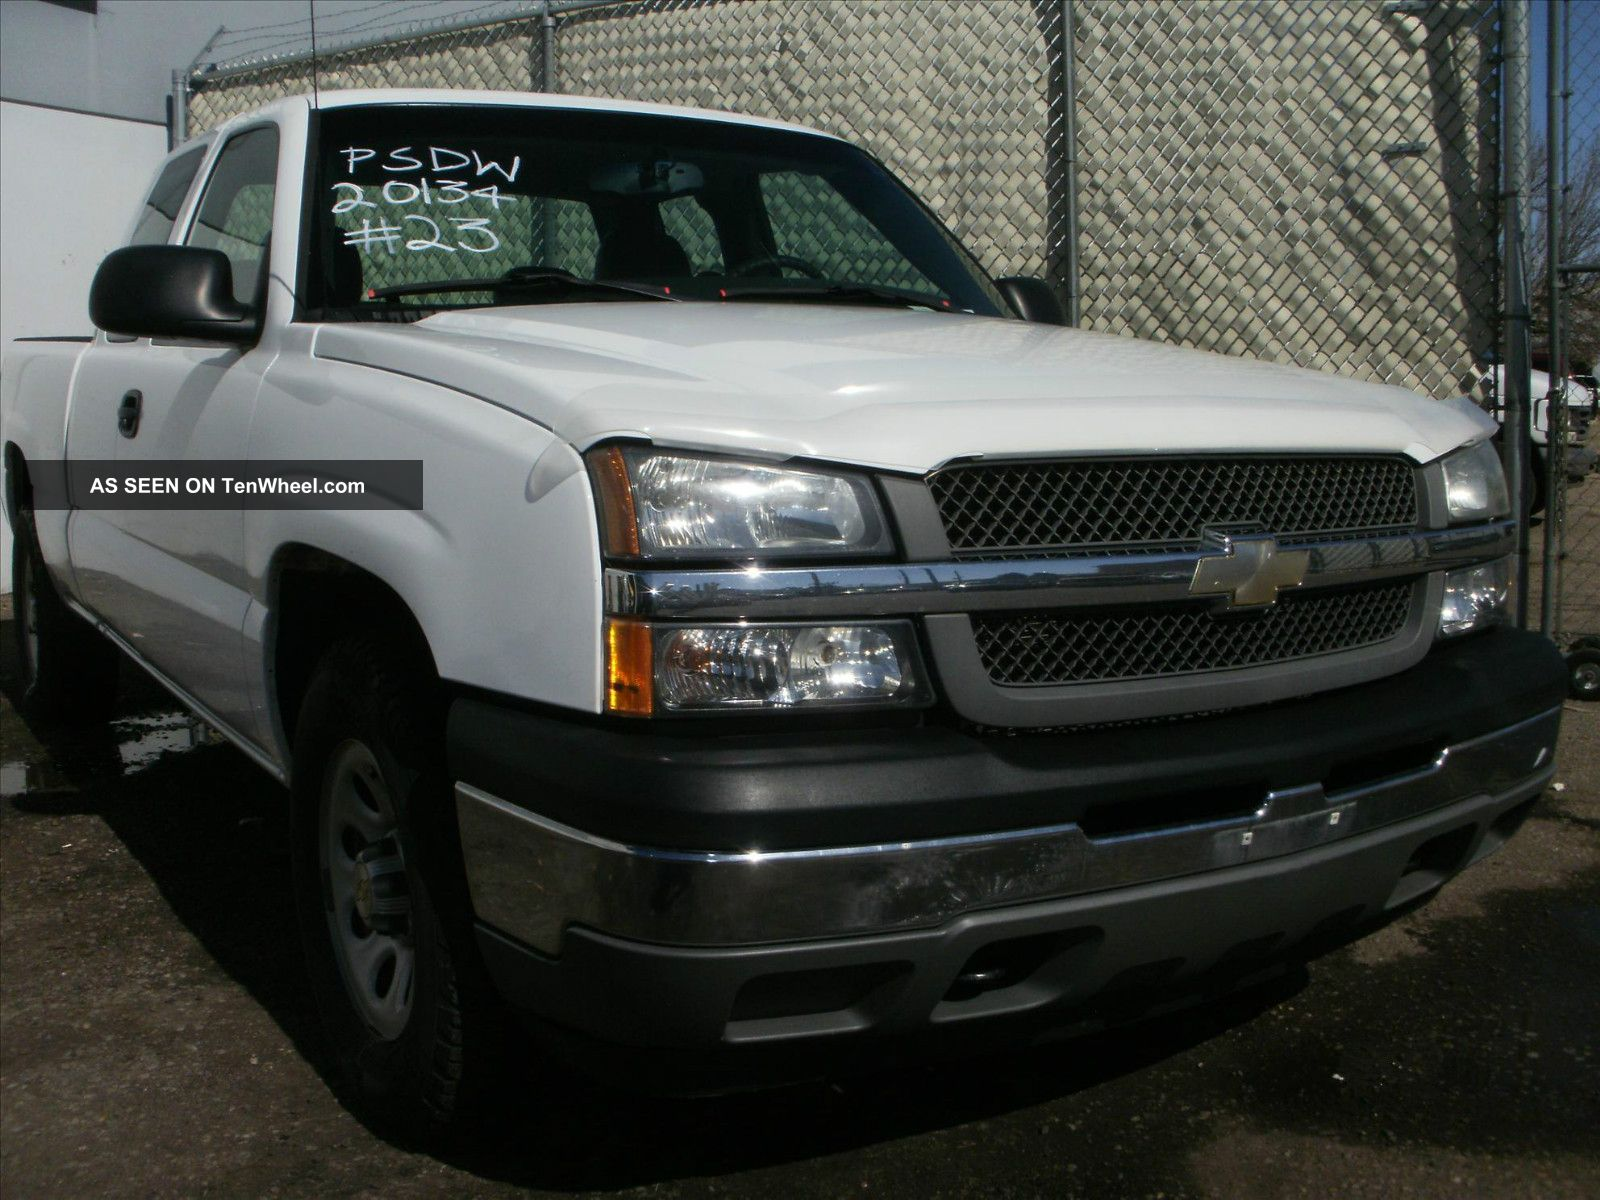 2005 chevy silverado 1500 ext cab 4x4 asset 20134. Black Bedroom Furniture Sets. Home Design Ideas